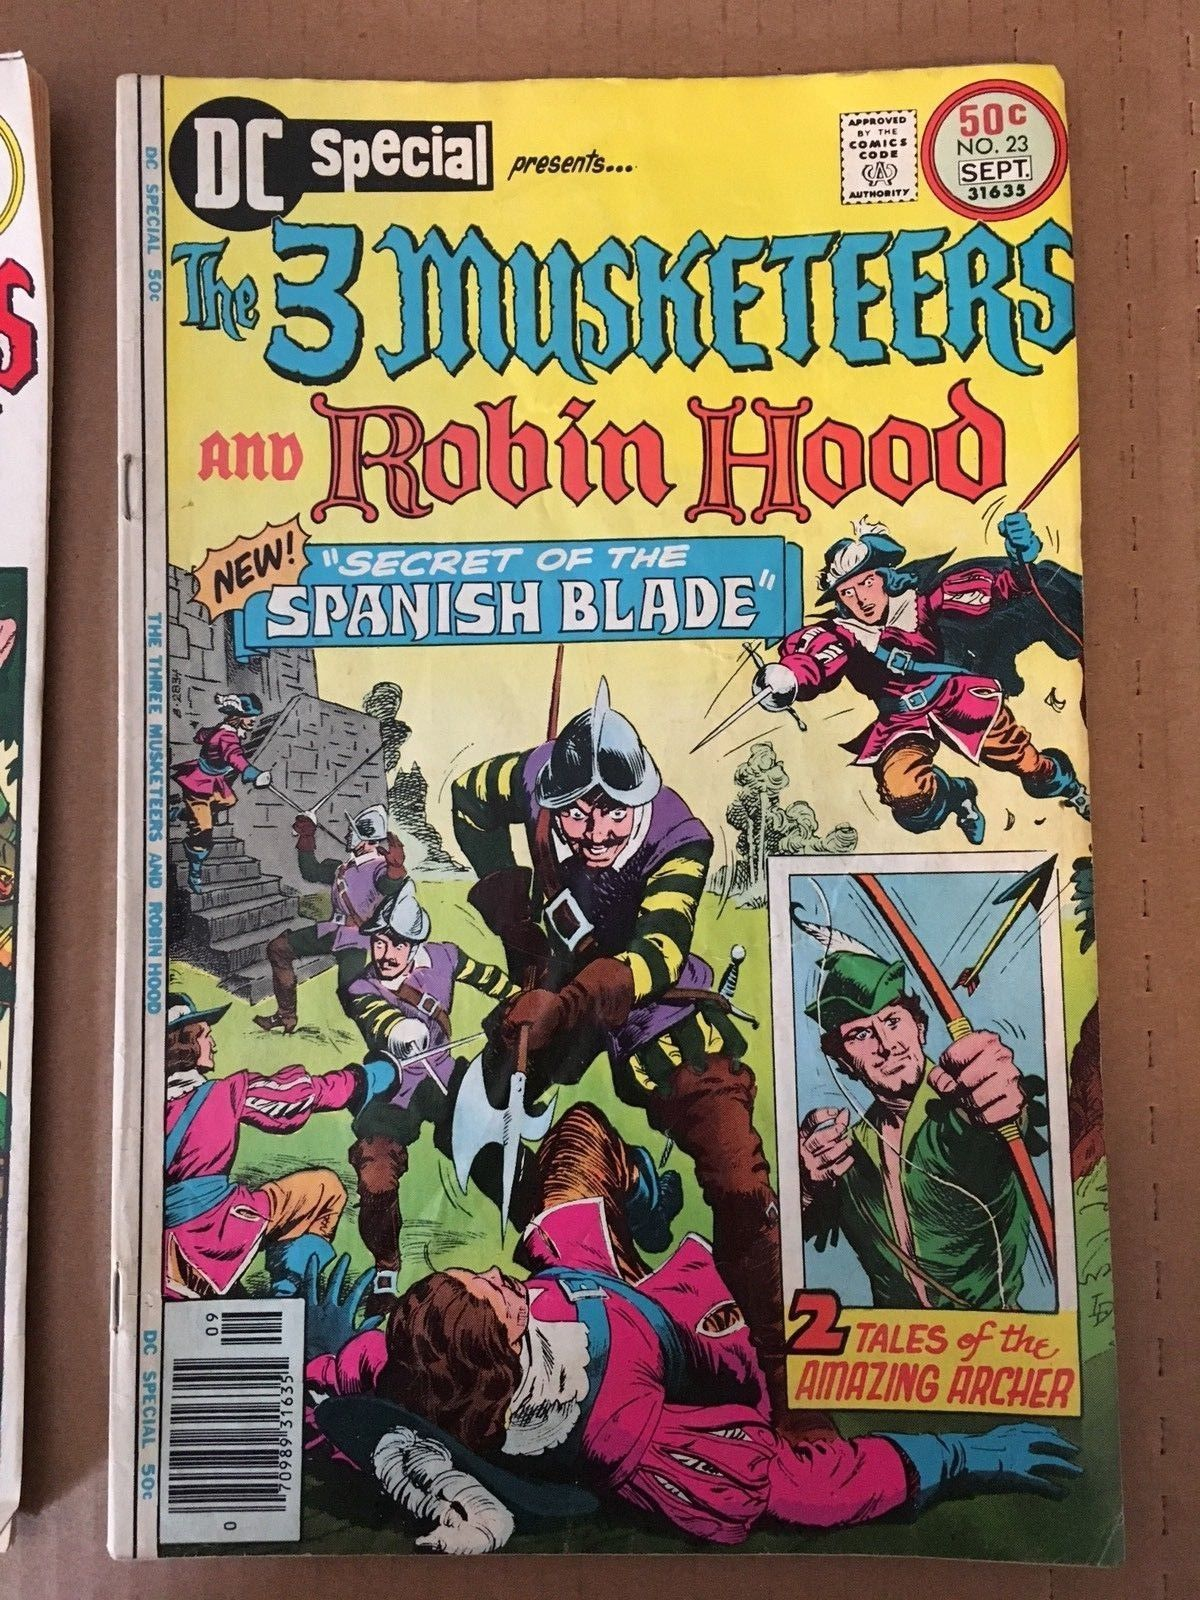 The Three Musketeers & Robin Hood #22 23 DC Special Comic Book Lot 1976 VG 5.0